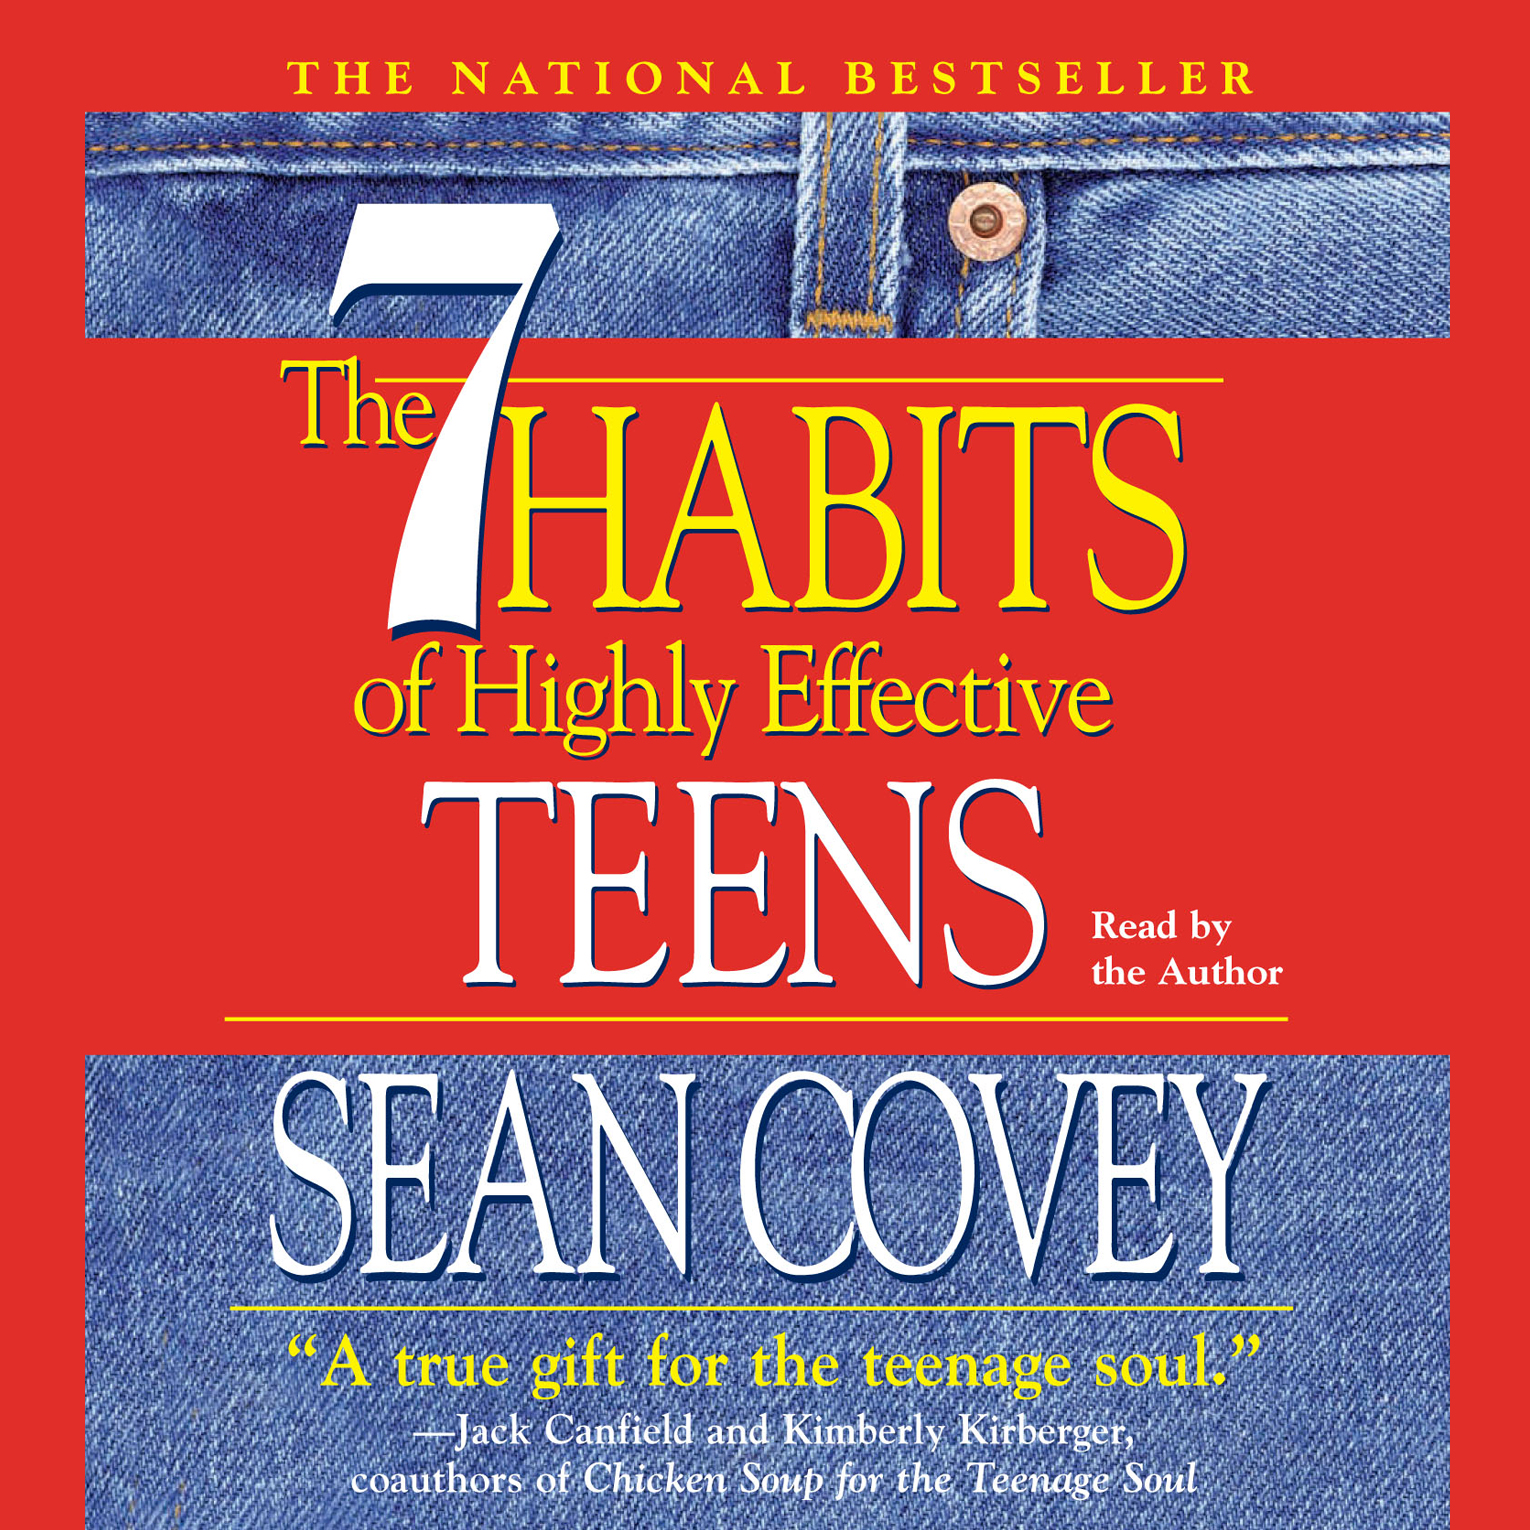 The 7 Habits Of Highly Effective Teens Audiobook By Sean